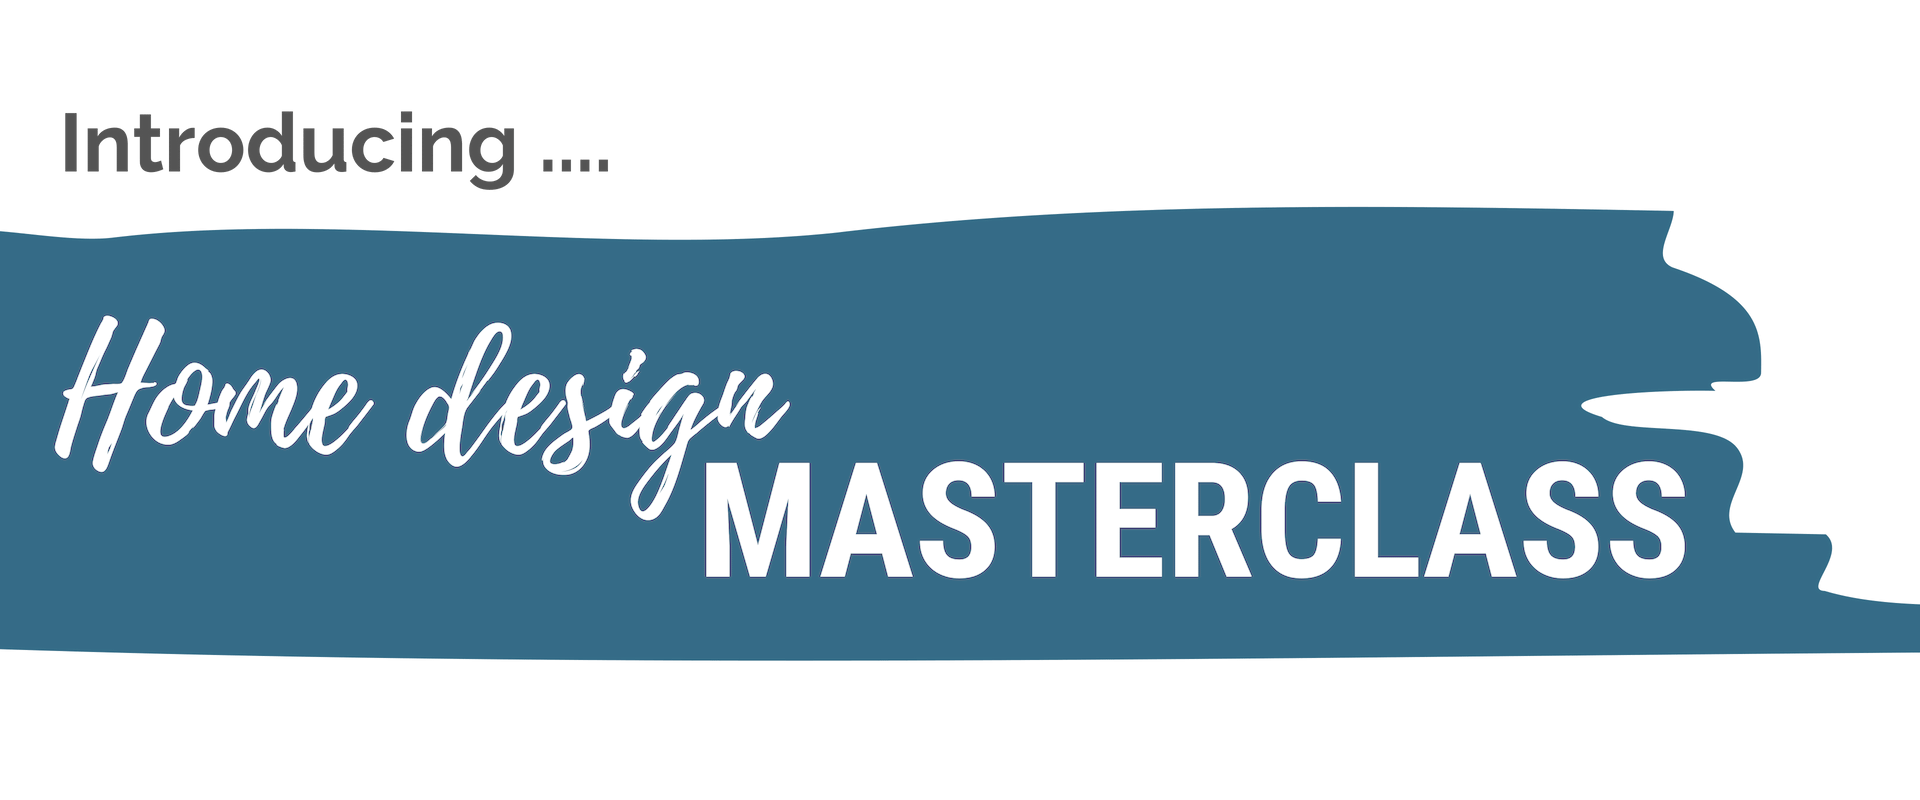 UndercoverArchitect-Home-Design-Masterclass-Introducing